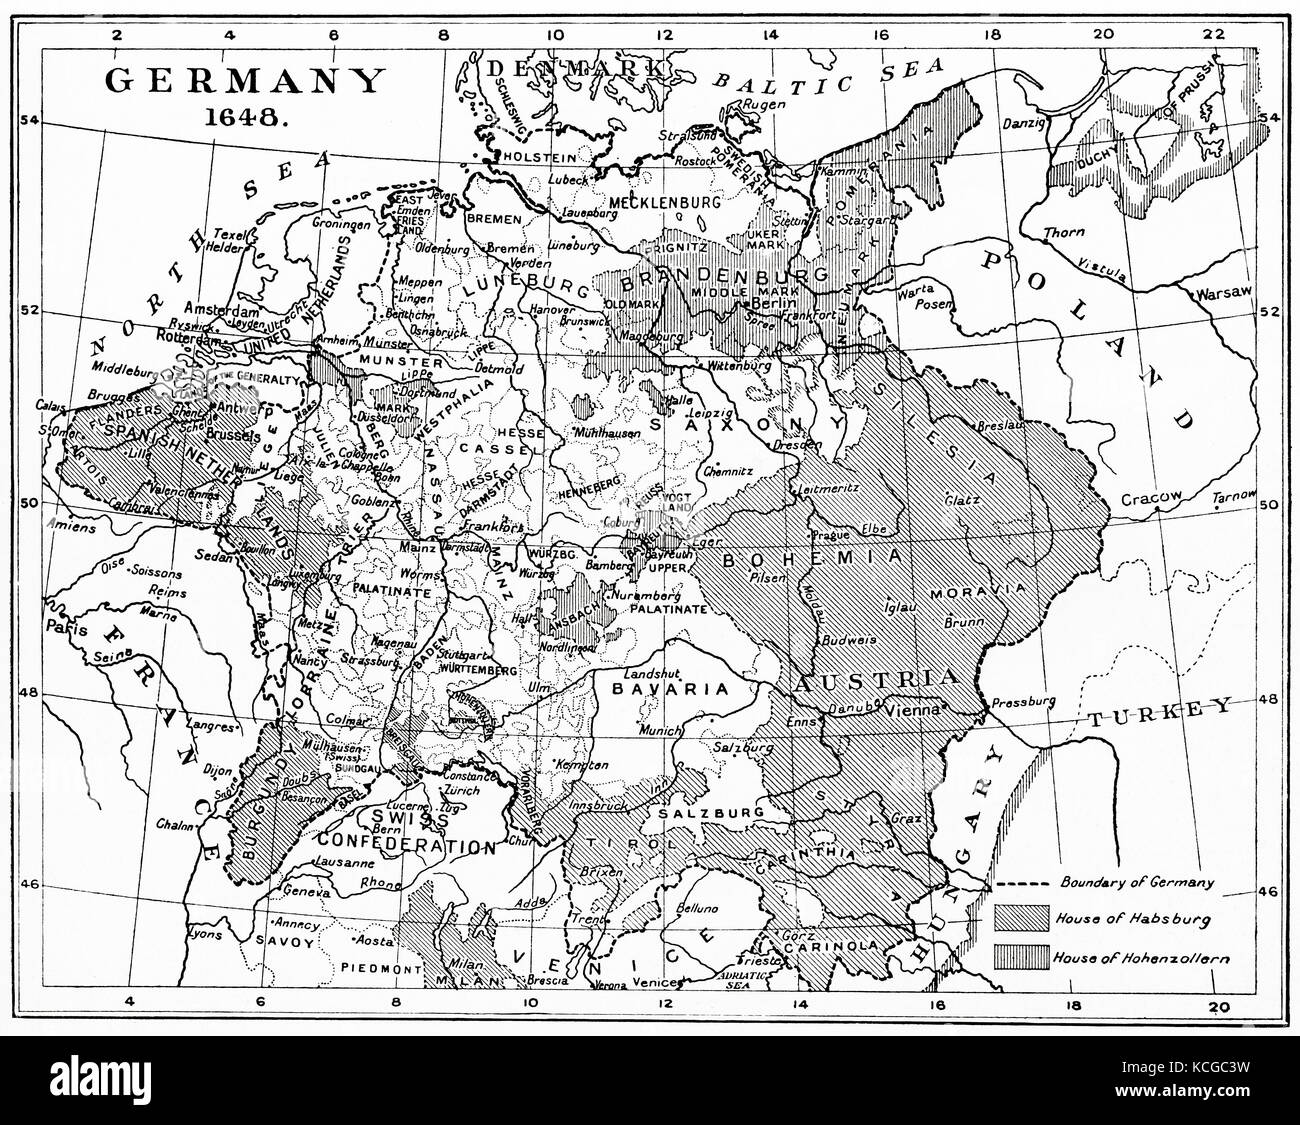 Map of Germany in 1648 after the Peace of Westphalia.  From Hutchinson's History of the Nations, published 1915. - Stock Image